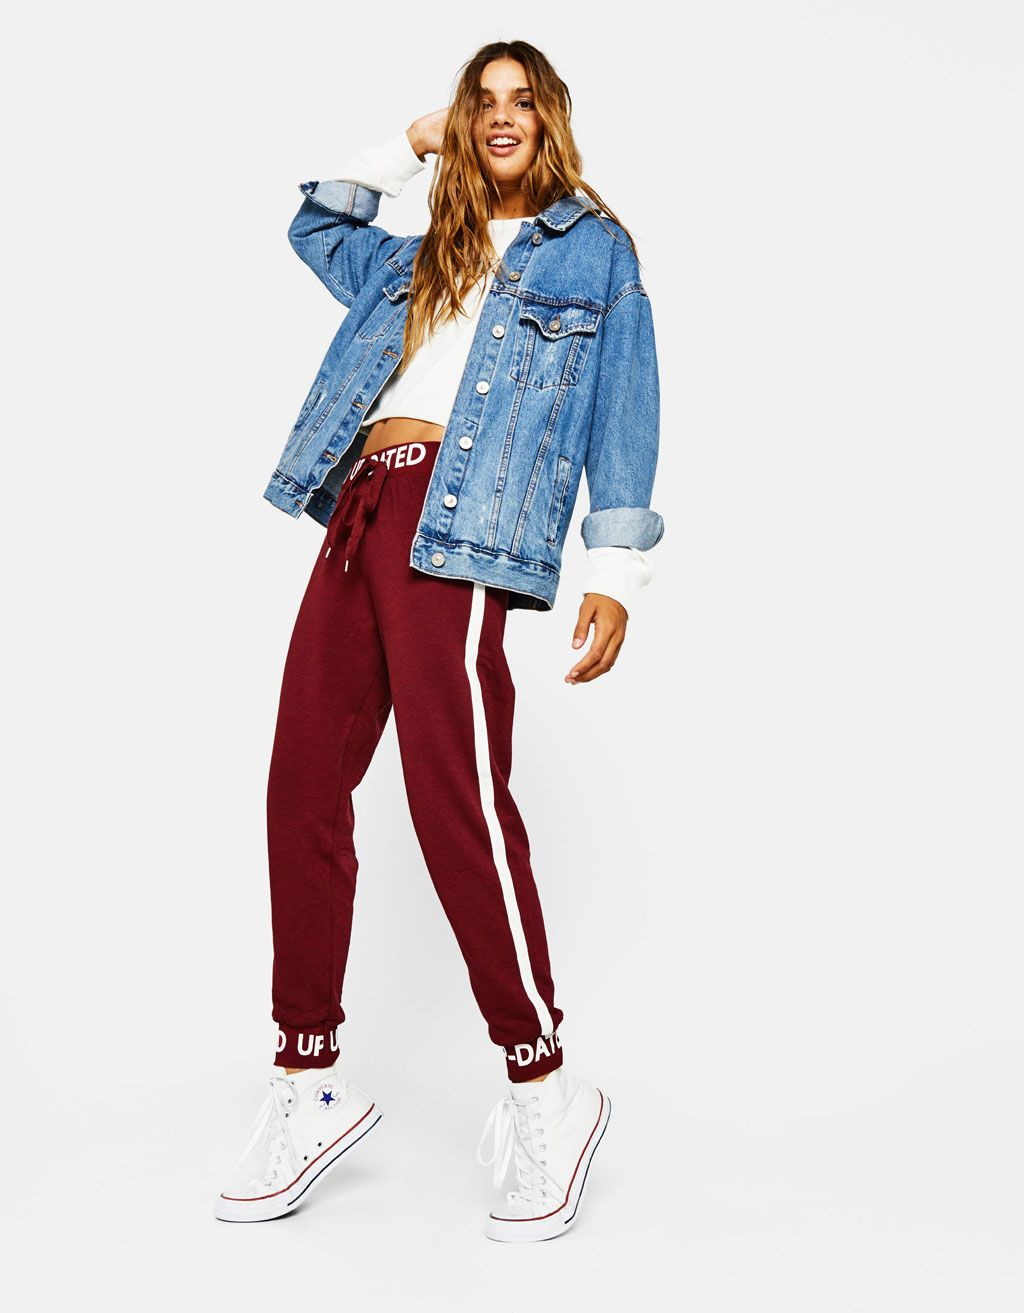 Knit Sweatpants With Text Discover This And Many More Items In Bershka With New Products Every Week Moda Bershka Ropa Ropa De Moda